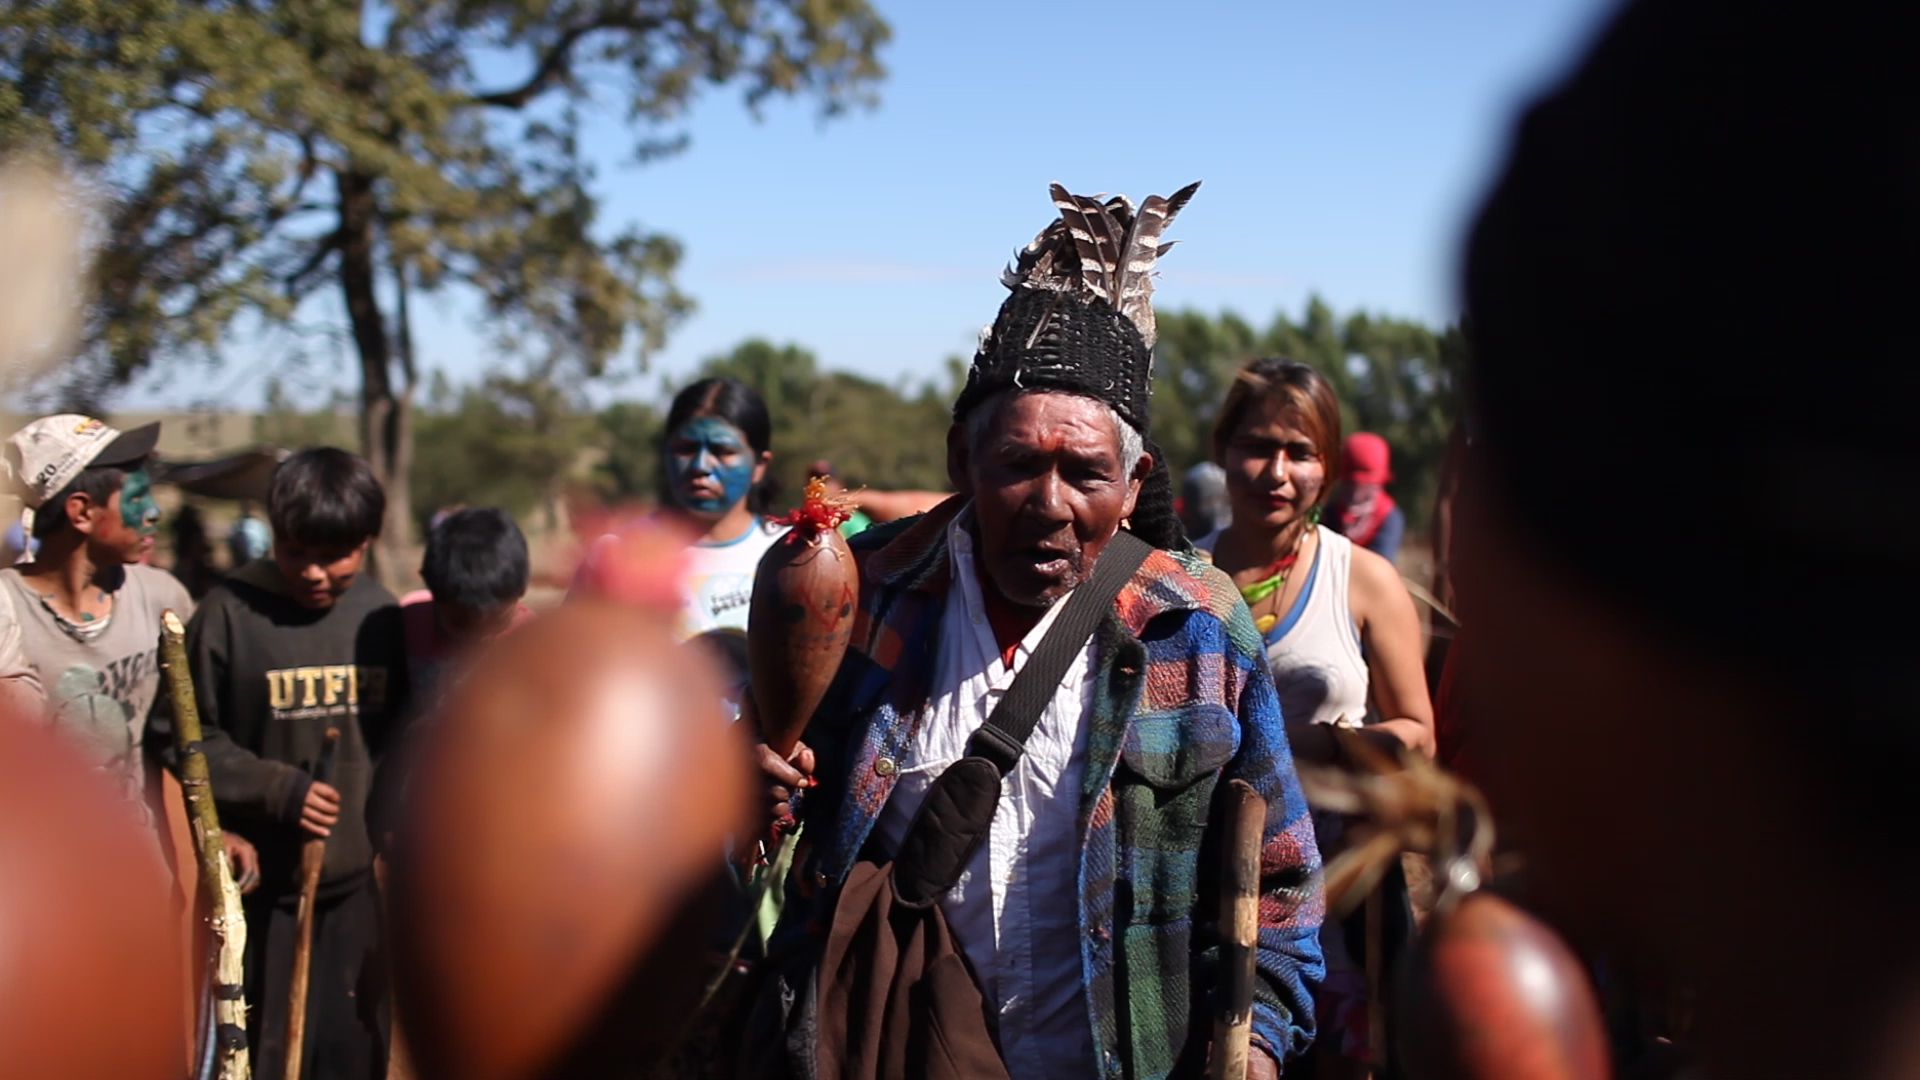 The Guarani Kaiowá gather in protest of the attack in Caarapó. Photo courtesy of CIMI